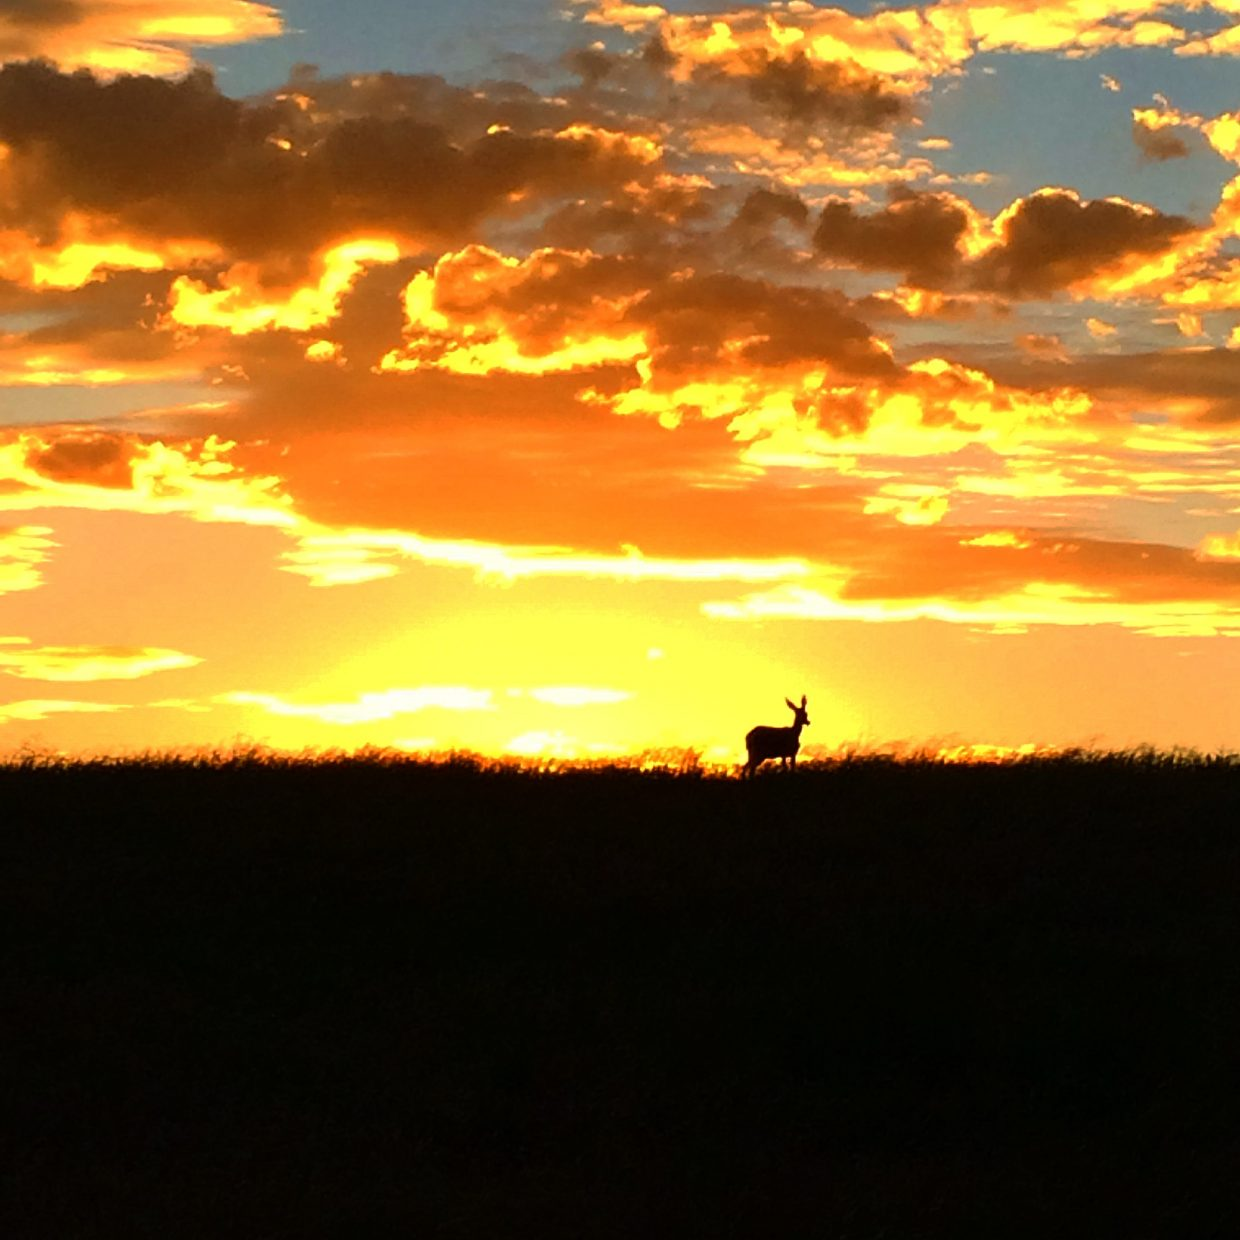 Sunset and a deer. Submitted by: Michelle Madderom